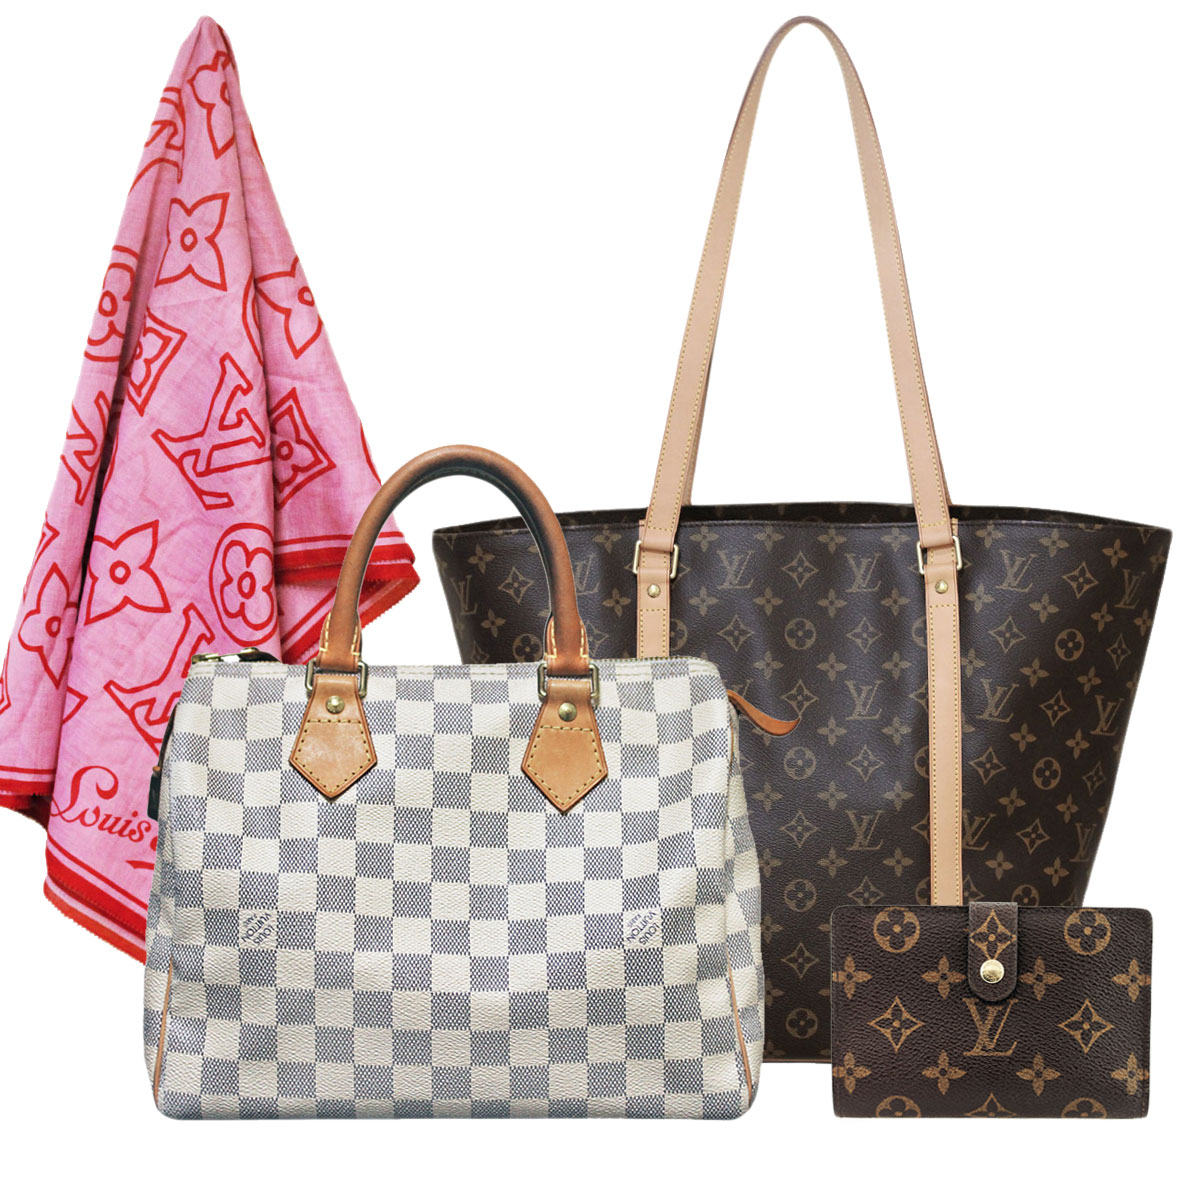 louis vuitton used bags. sell louis vuitton bags louis vuitton used bags